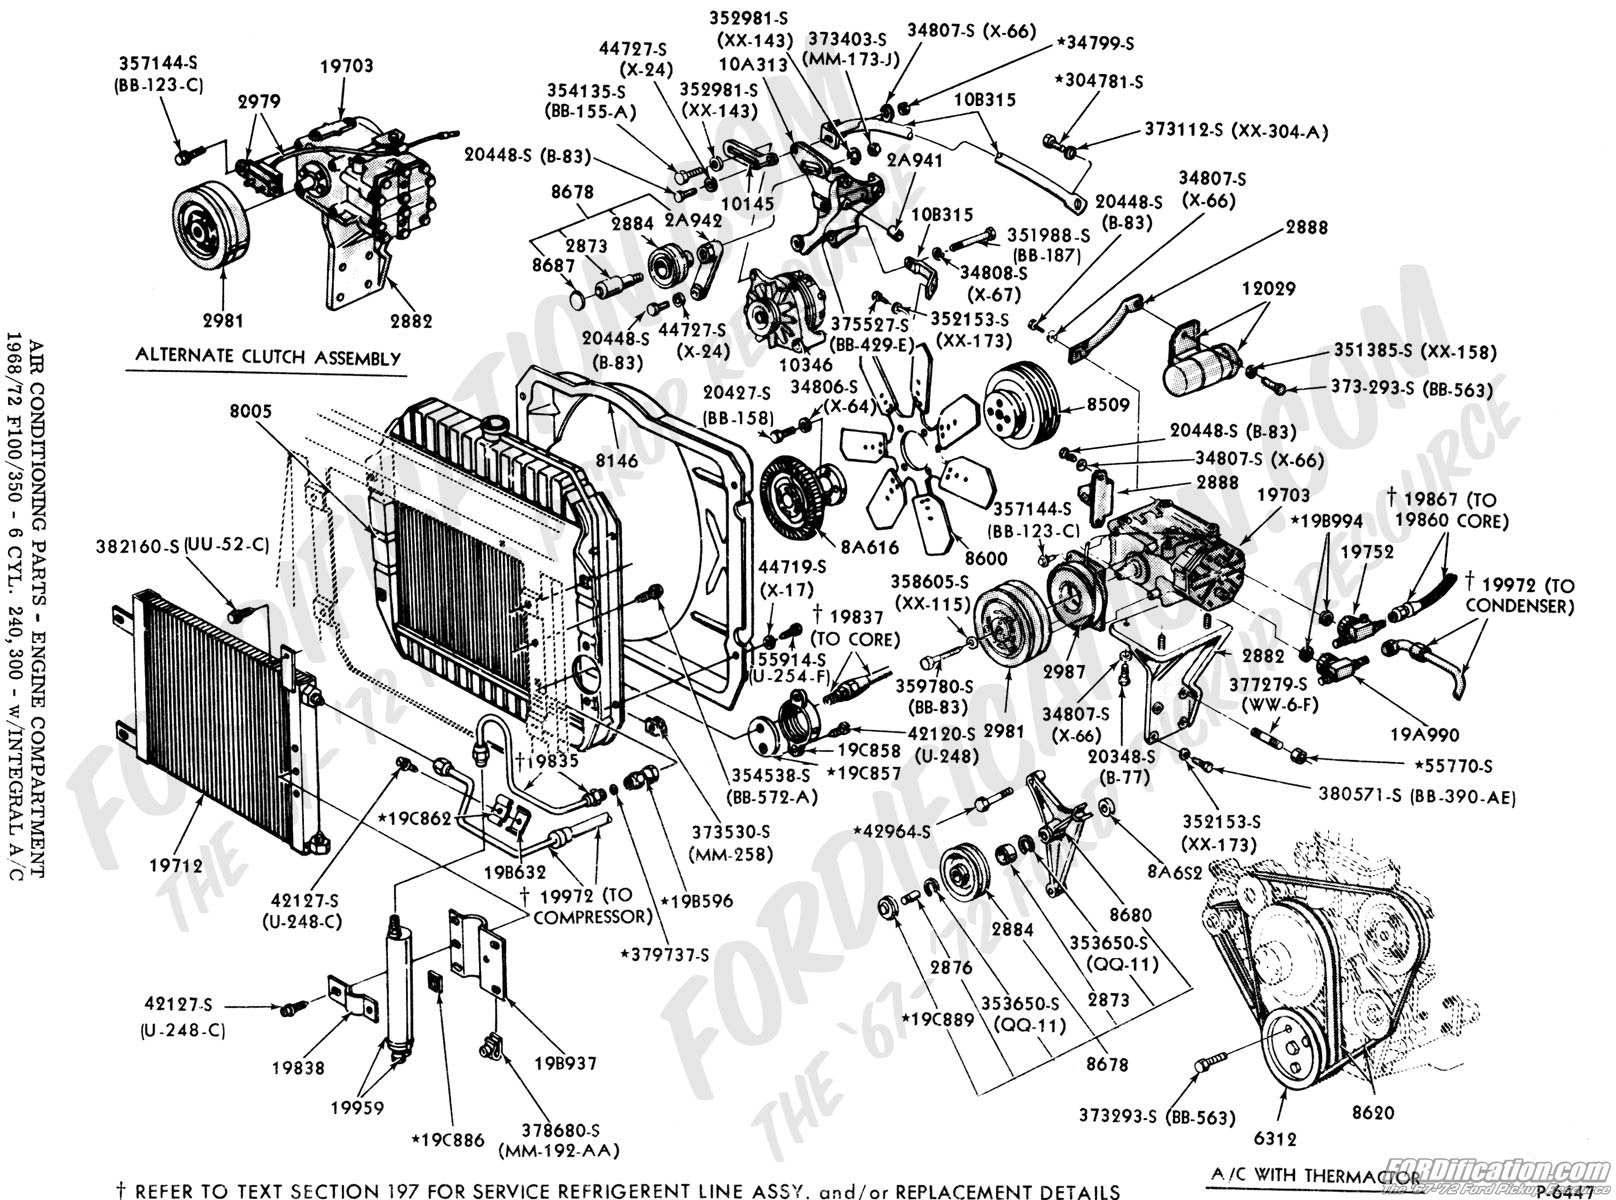 engine compartment diagram ford truck part numbers (air conditioning, factory ... f450 engine compartment diagram